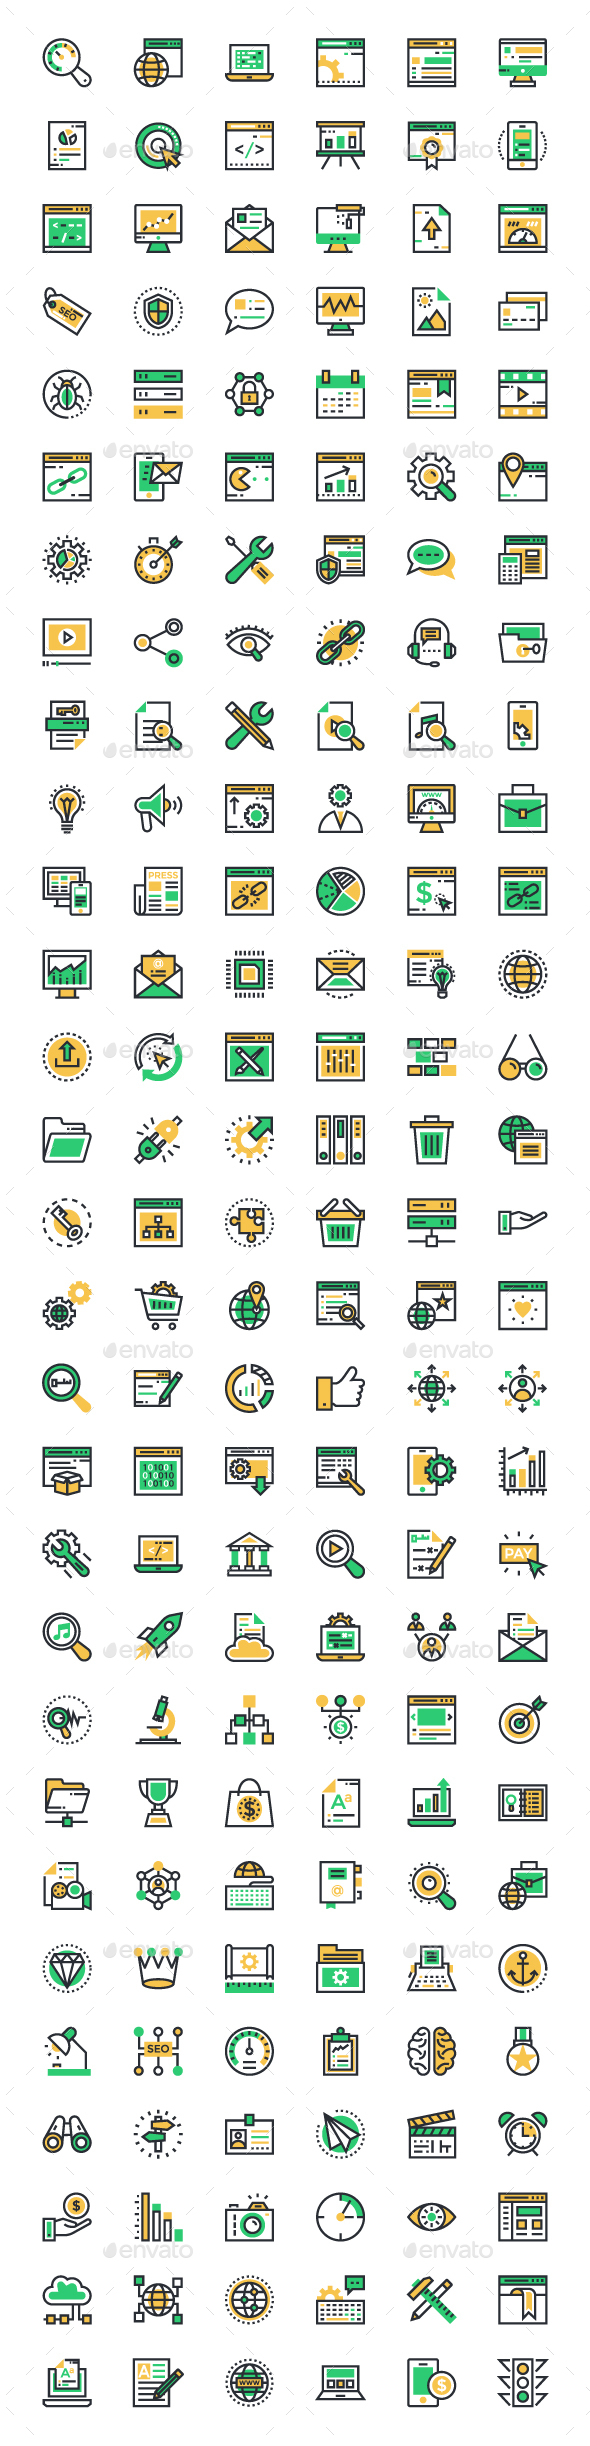 150+ SEO and Marketing Icons - Web Icons